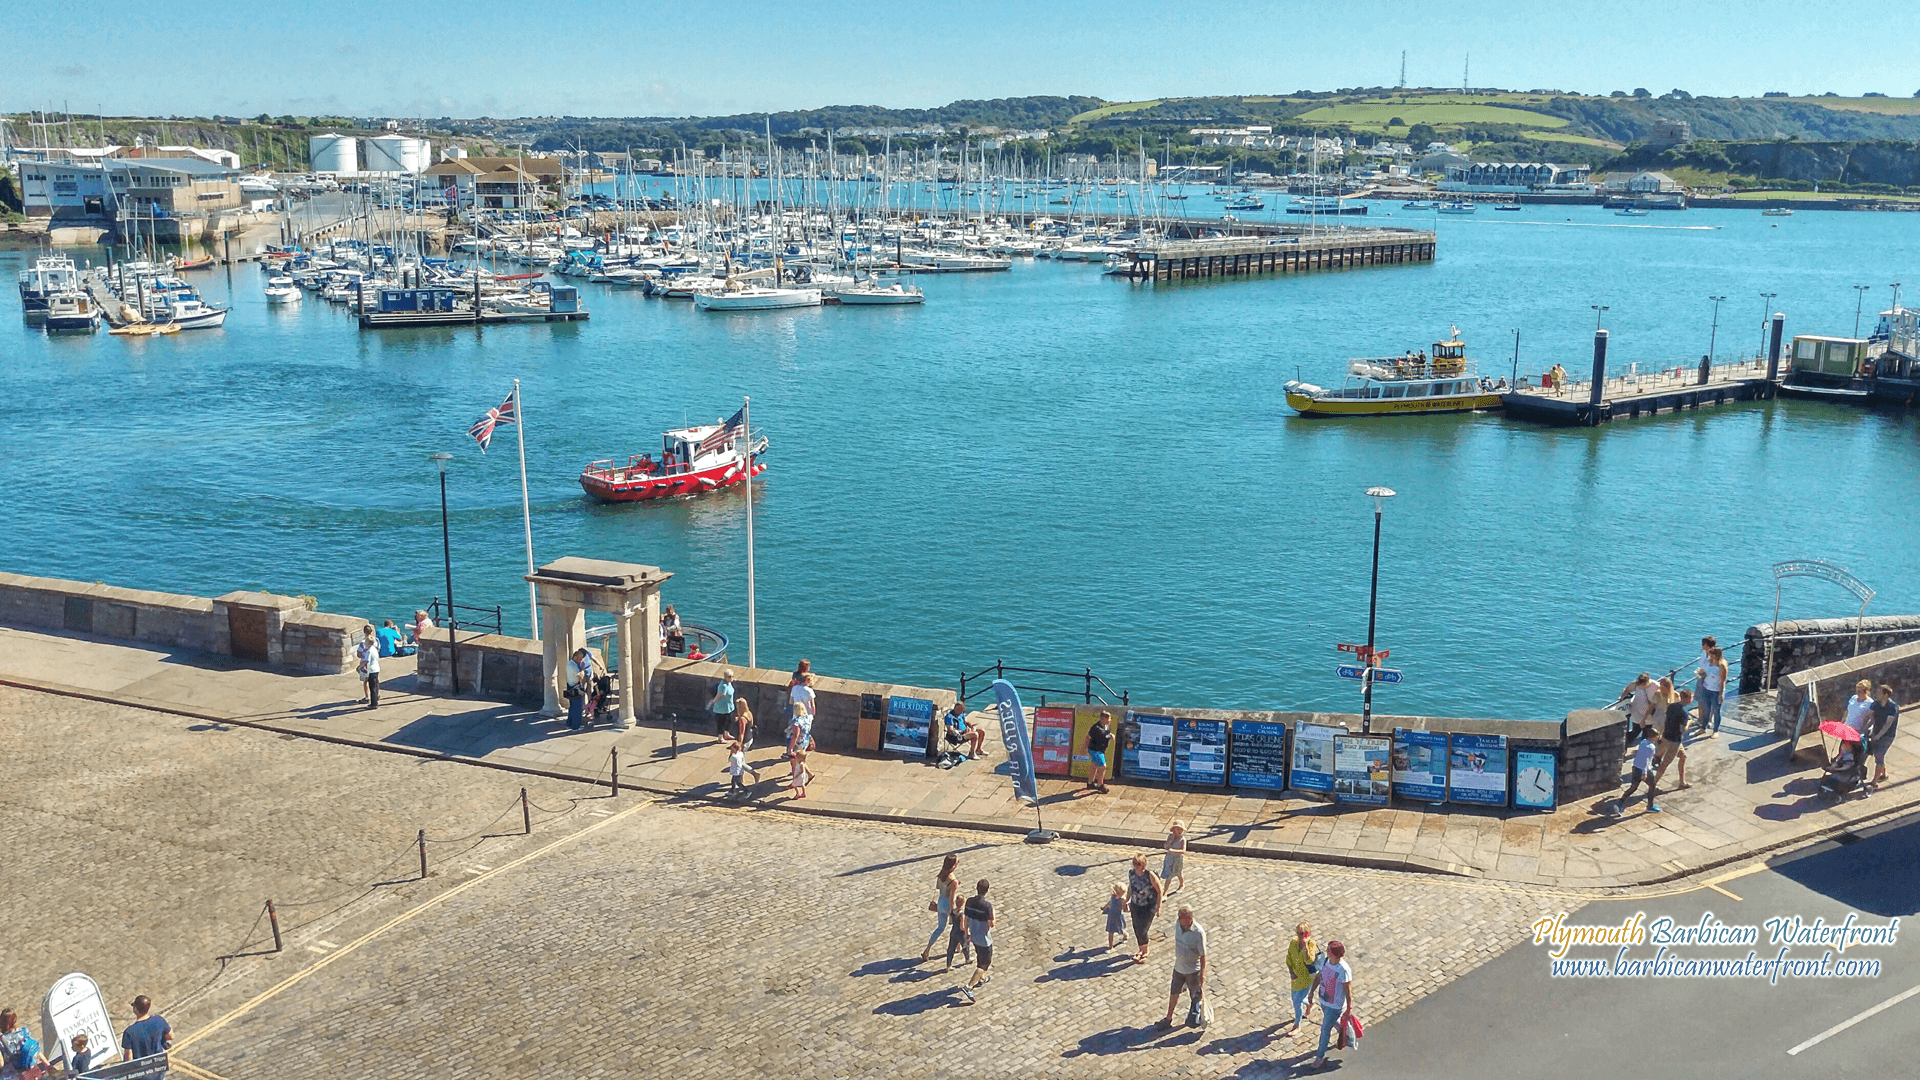 Plymouth Barbican Waterfront